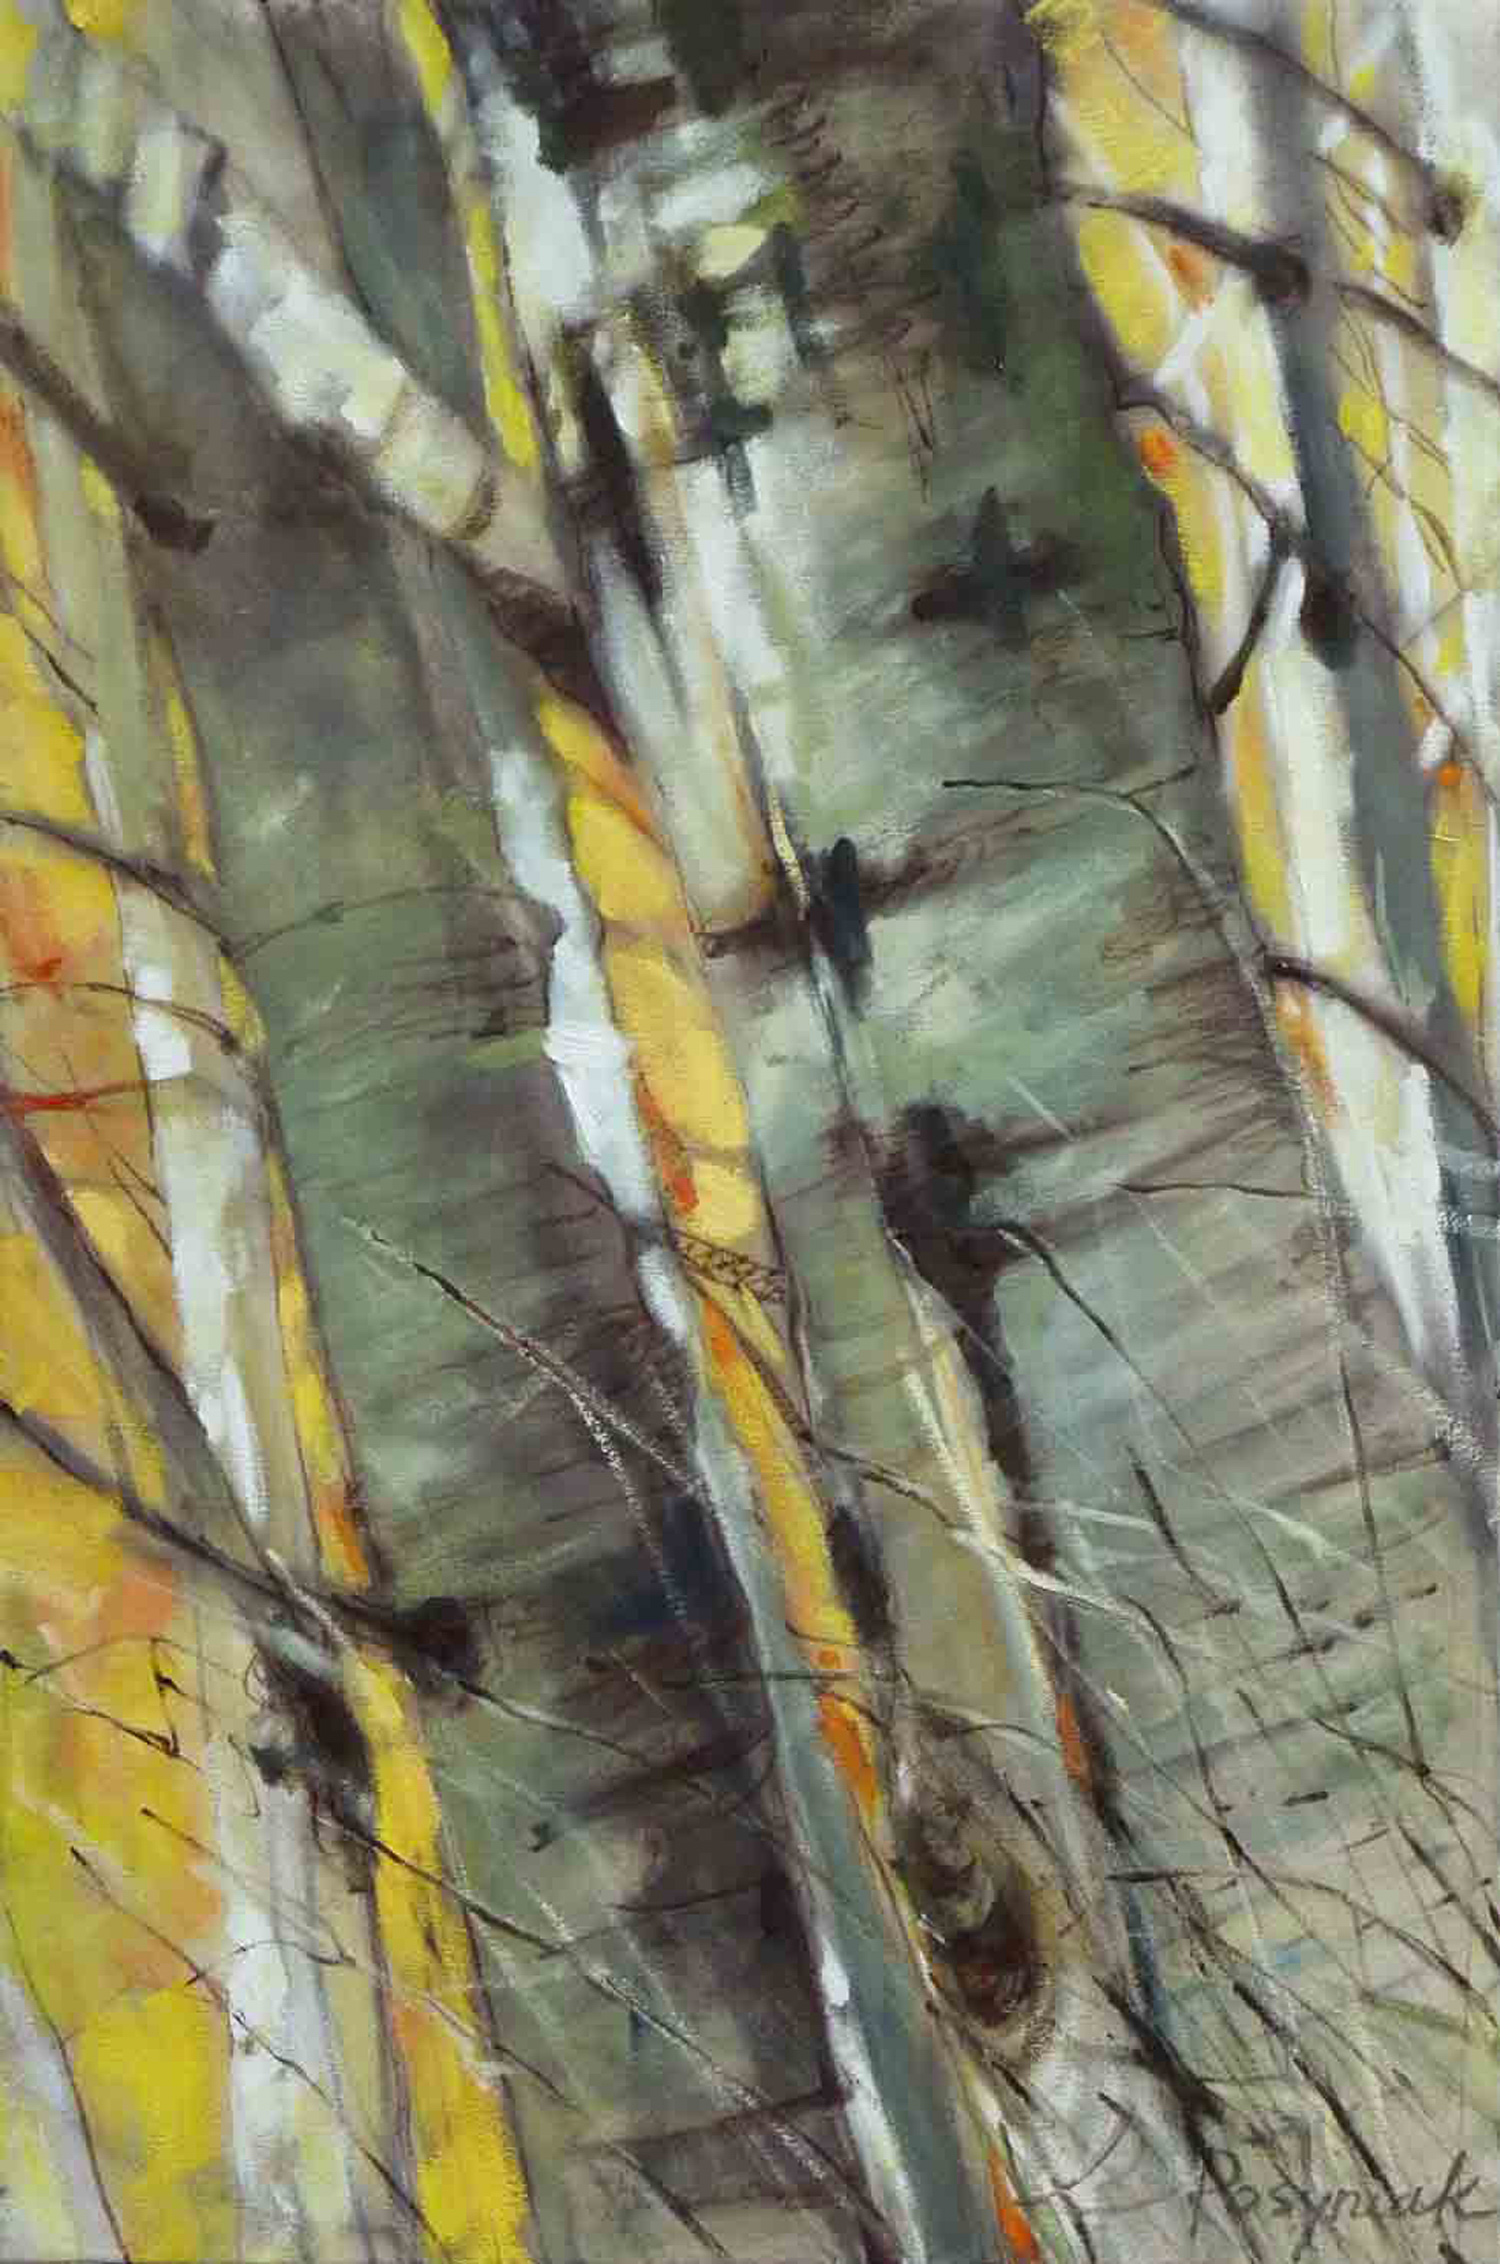 Aspen Fall 1, encaustic on canvas 36.0 x 24.0 in